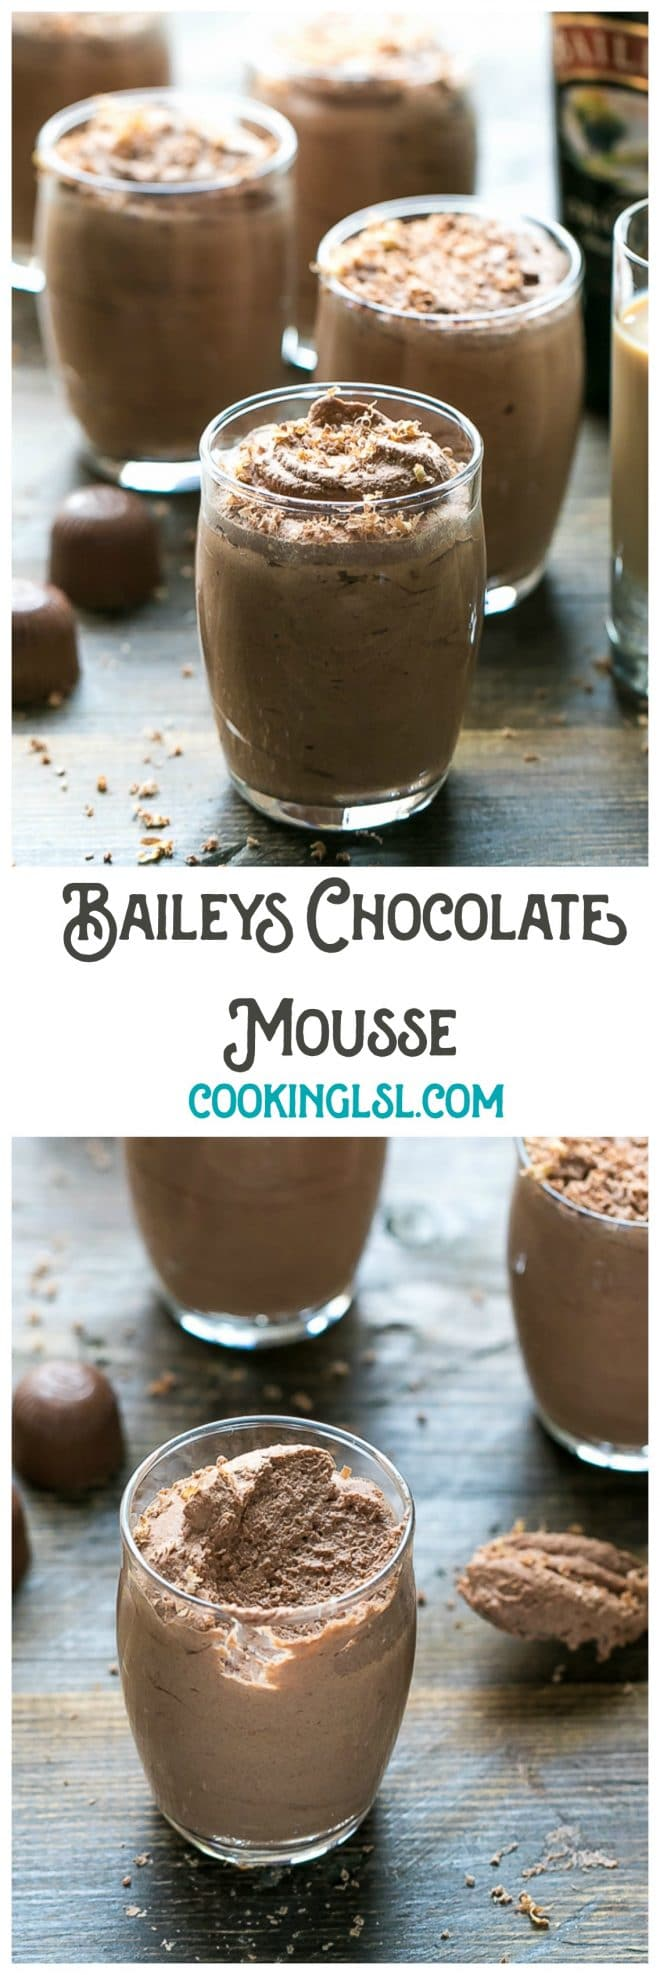 Easy Baileys Chocolate Mousse Recipe